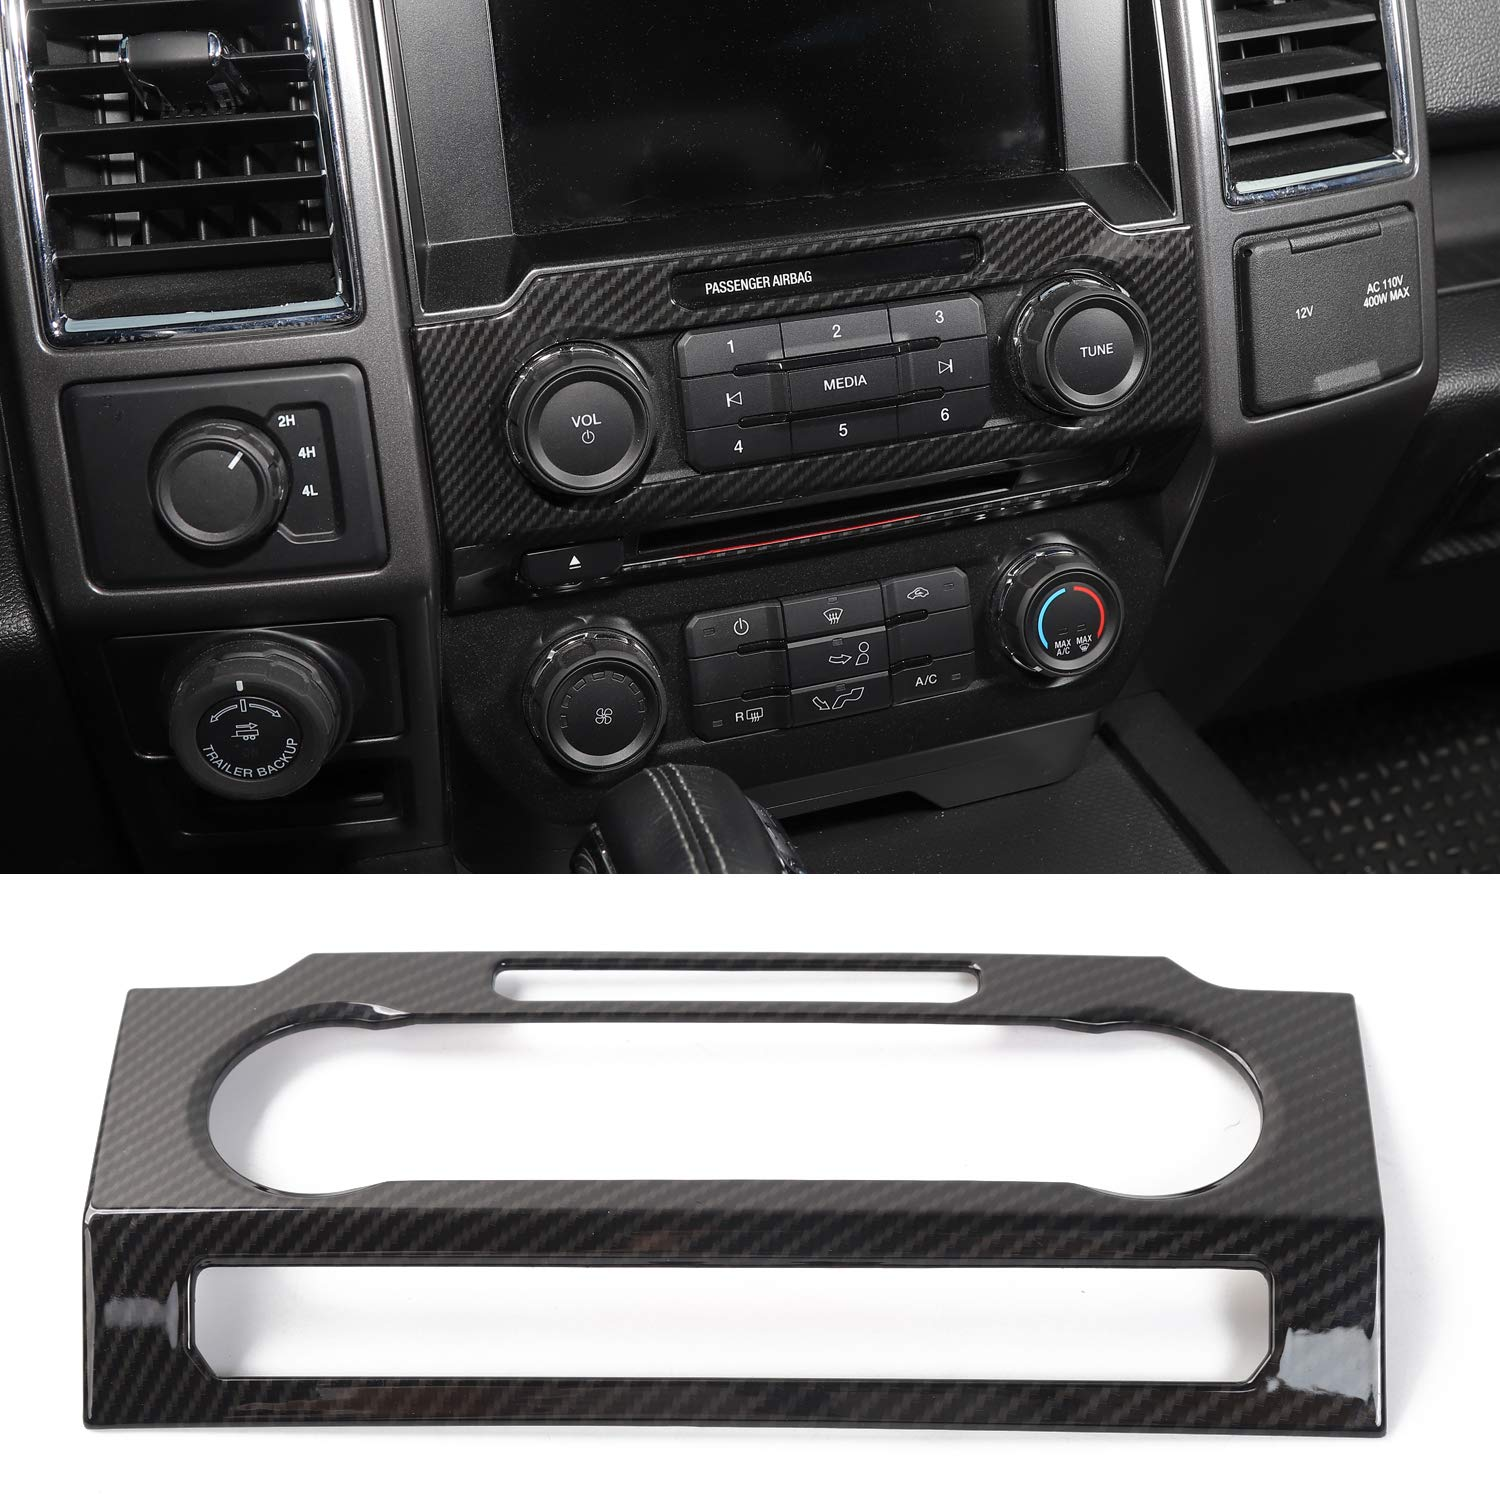 Voodonala Carbon Fiber Grain Central Control Volume Panel Decorative Trim for Ford F150 2015 2016 2017